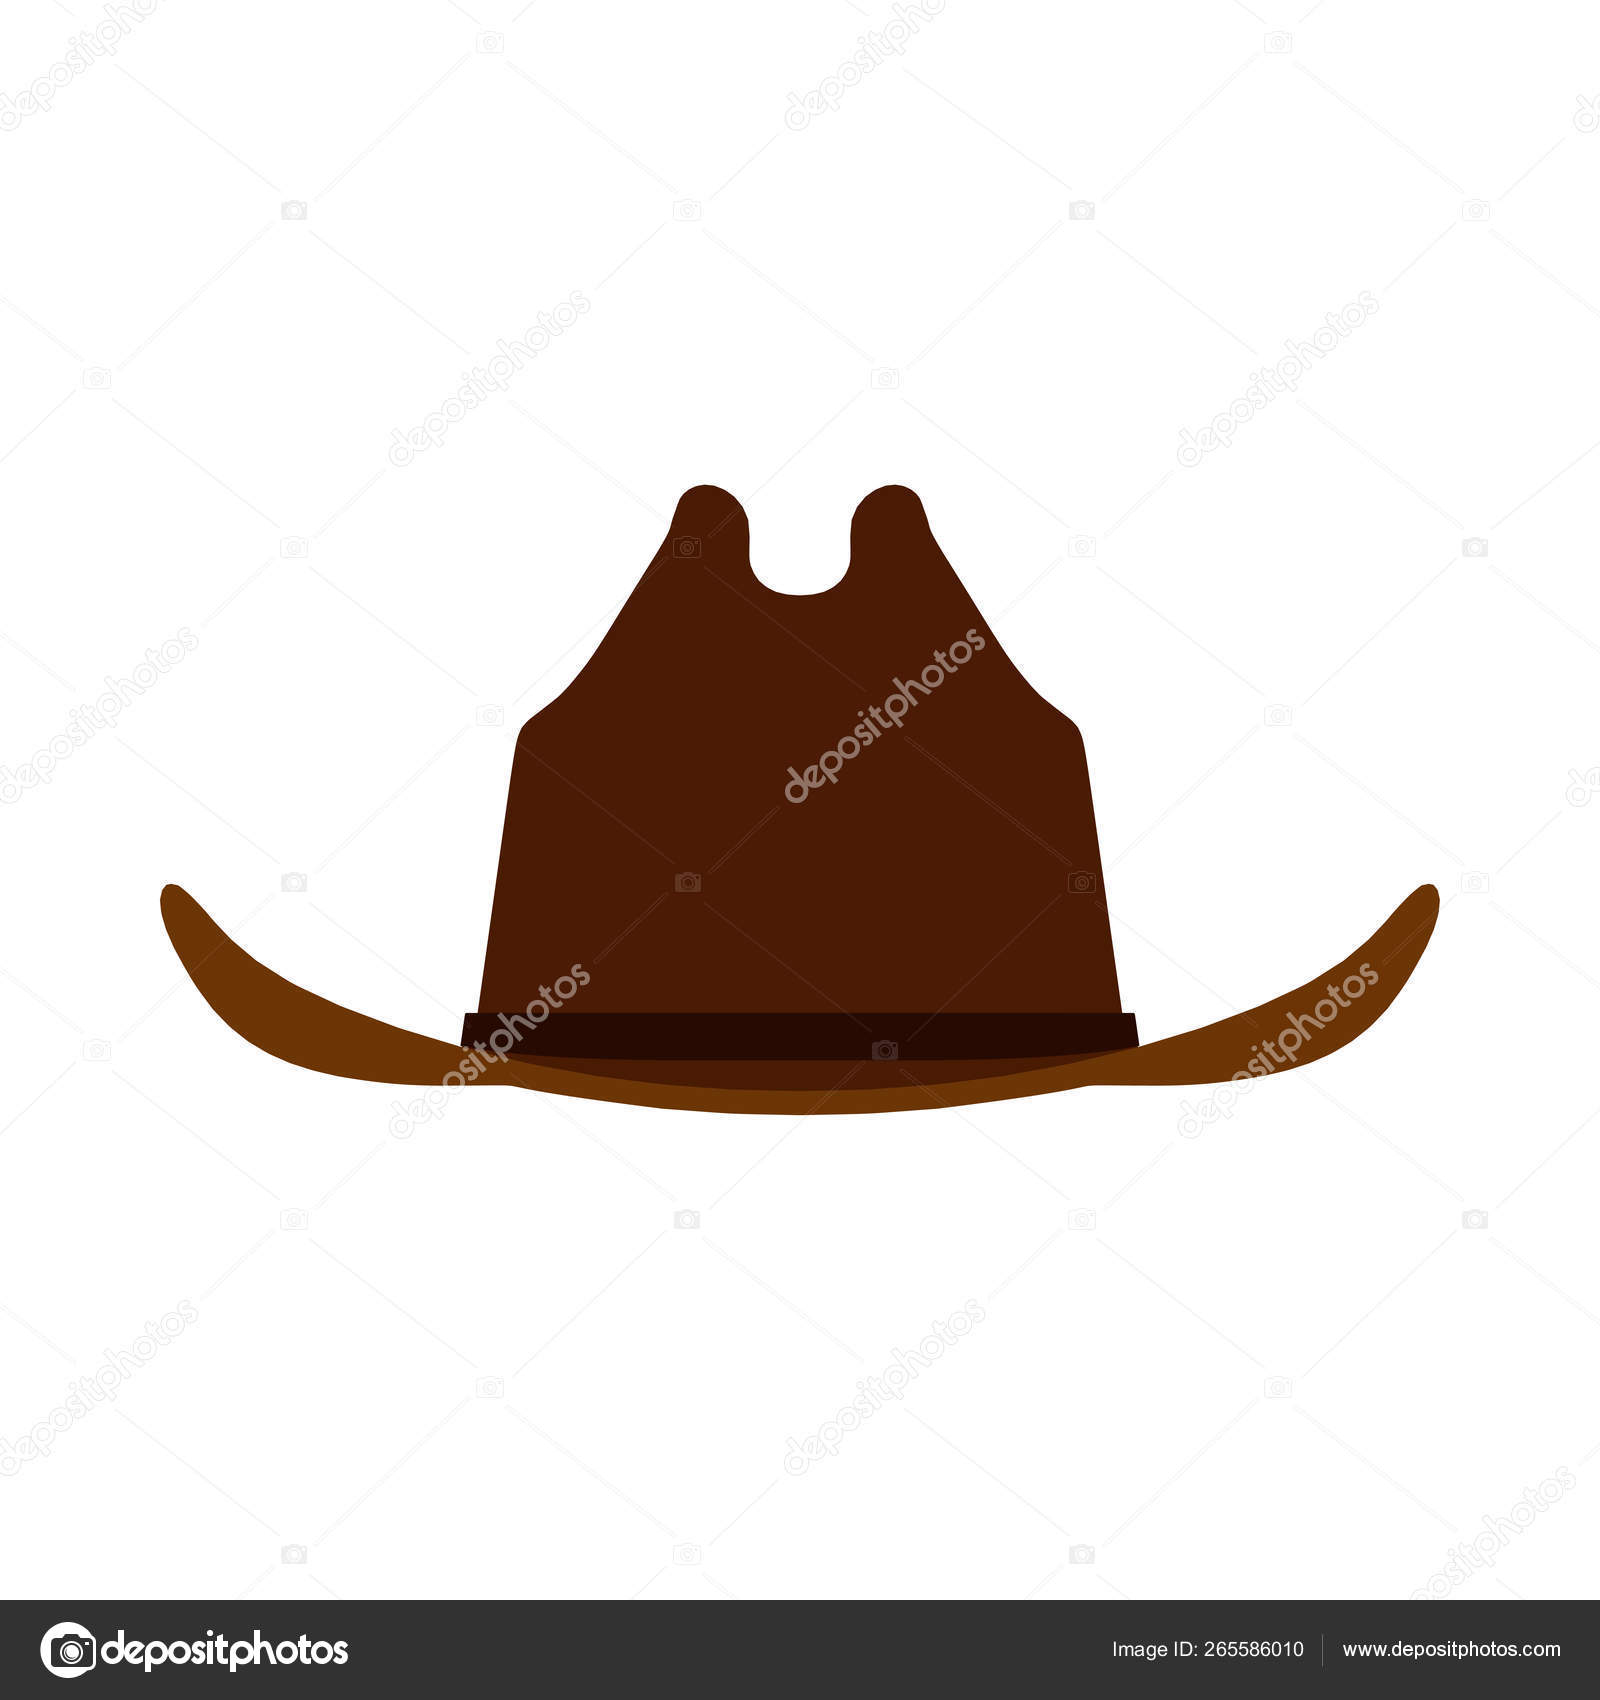 939dc0d71 Cowboy hat brown front view icon. Person male traditional farmer ...